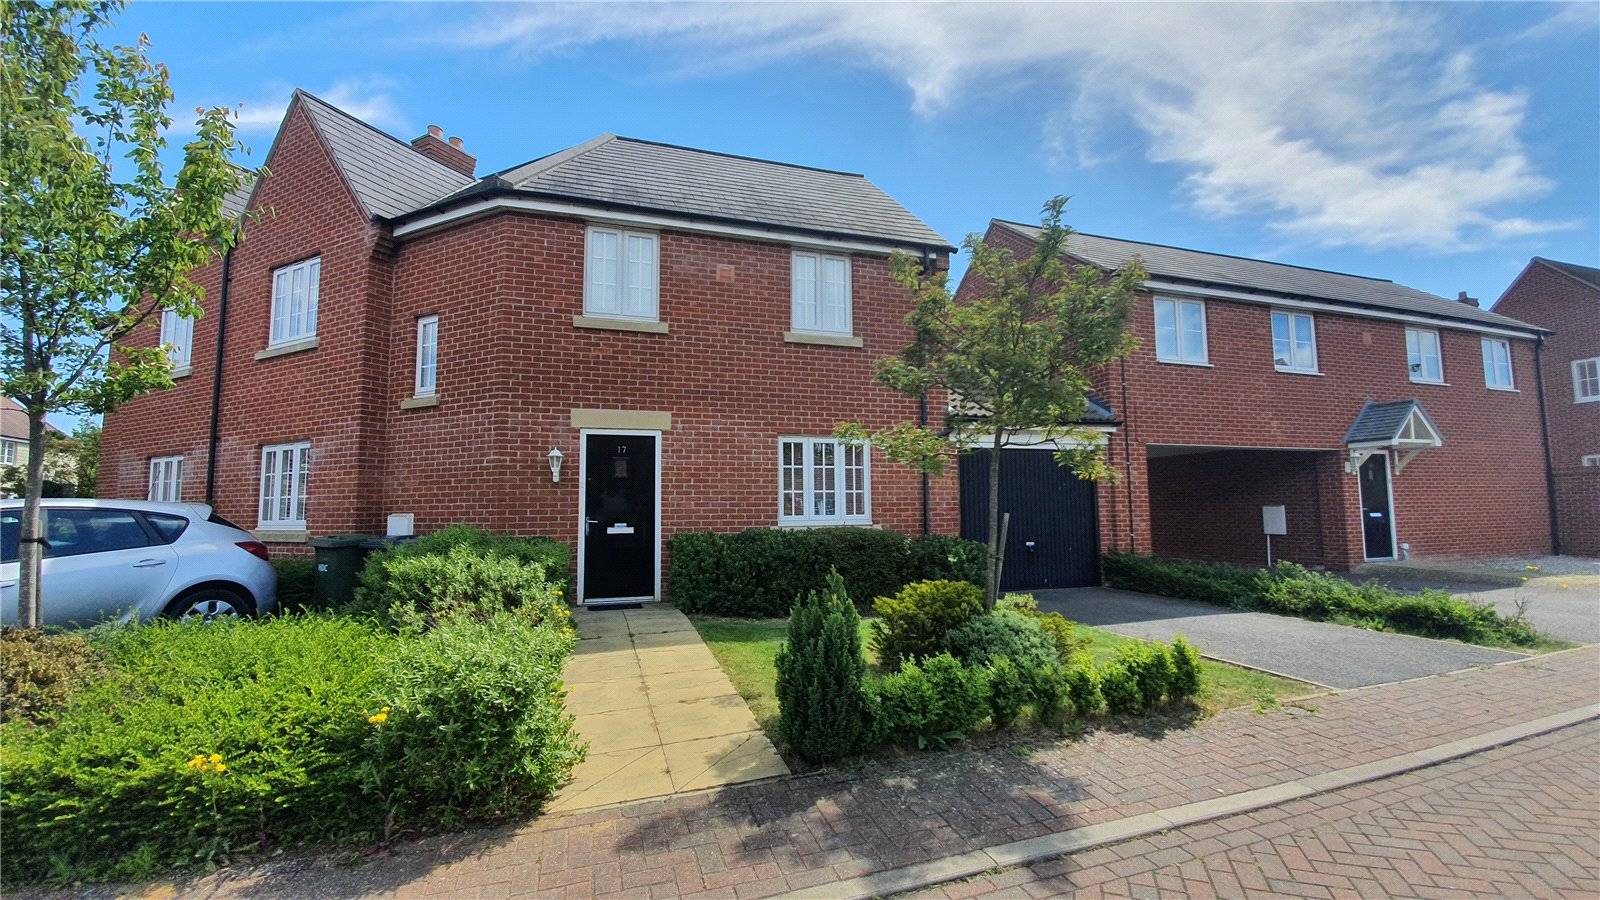 3 bed house for sale in St. Neots, Dixy Close, PE19 6BA - Property Image 1